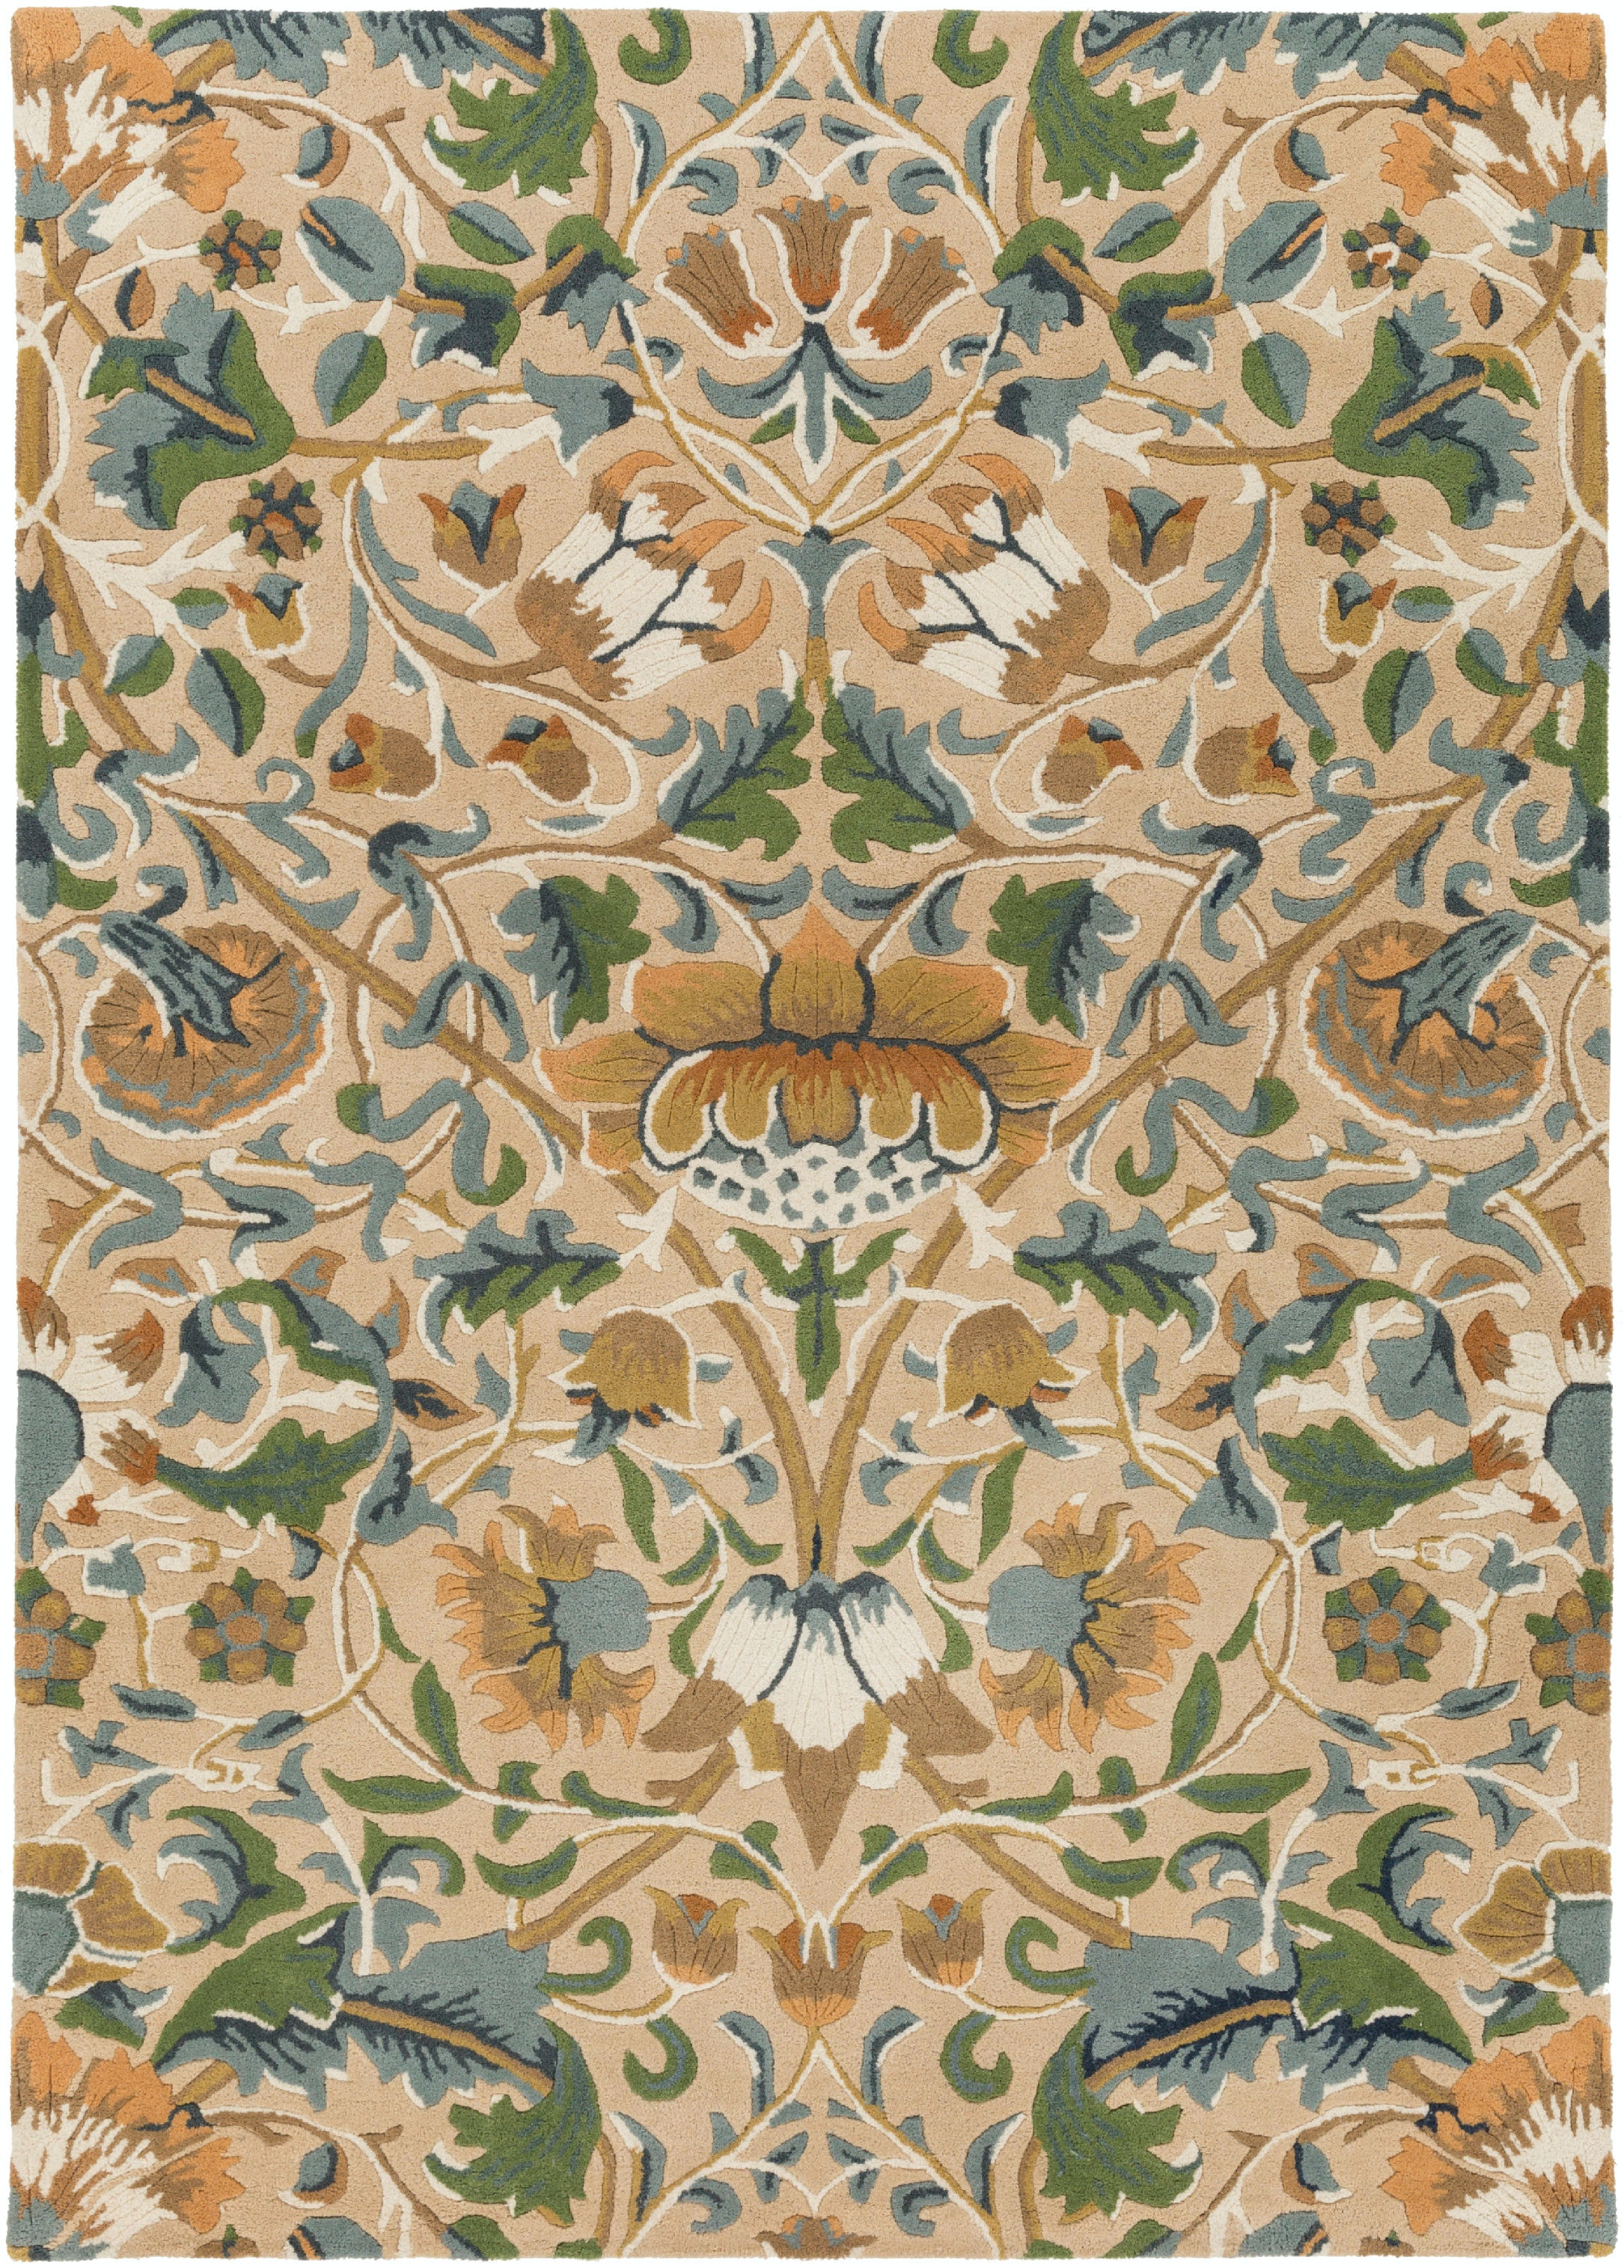 Surya William Morris Area Rug WLM3010 From Walter E. Smithe Furniture +  Design